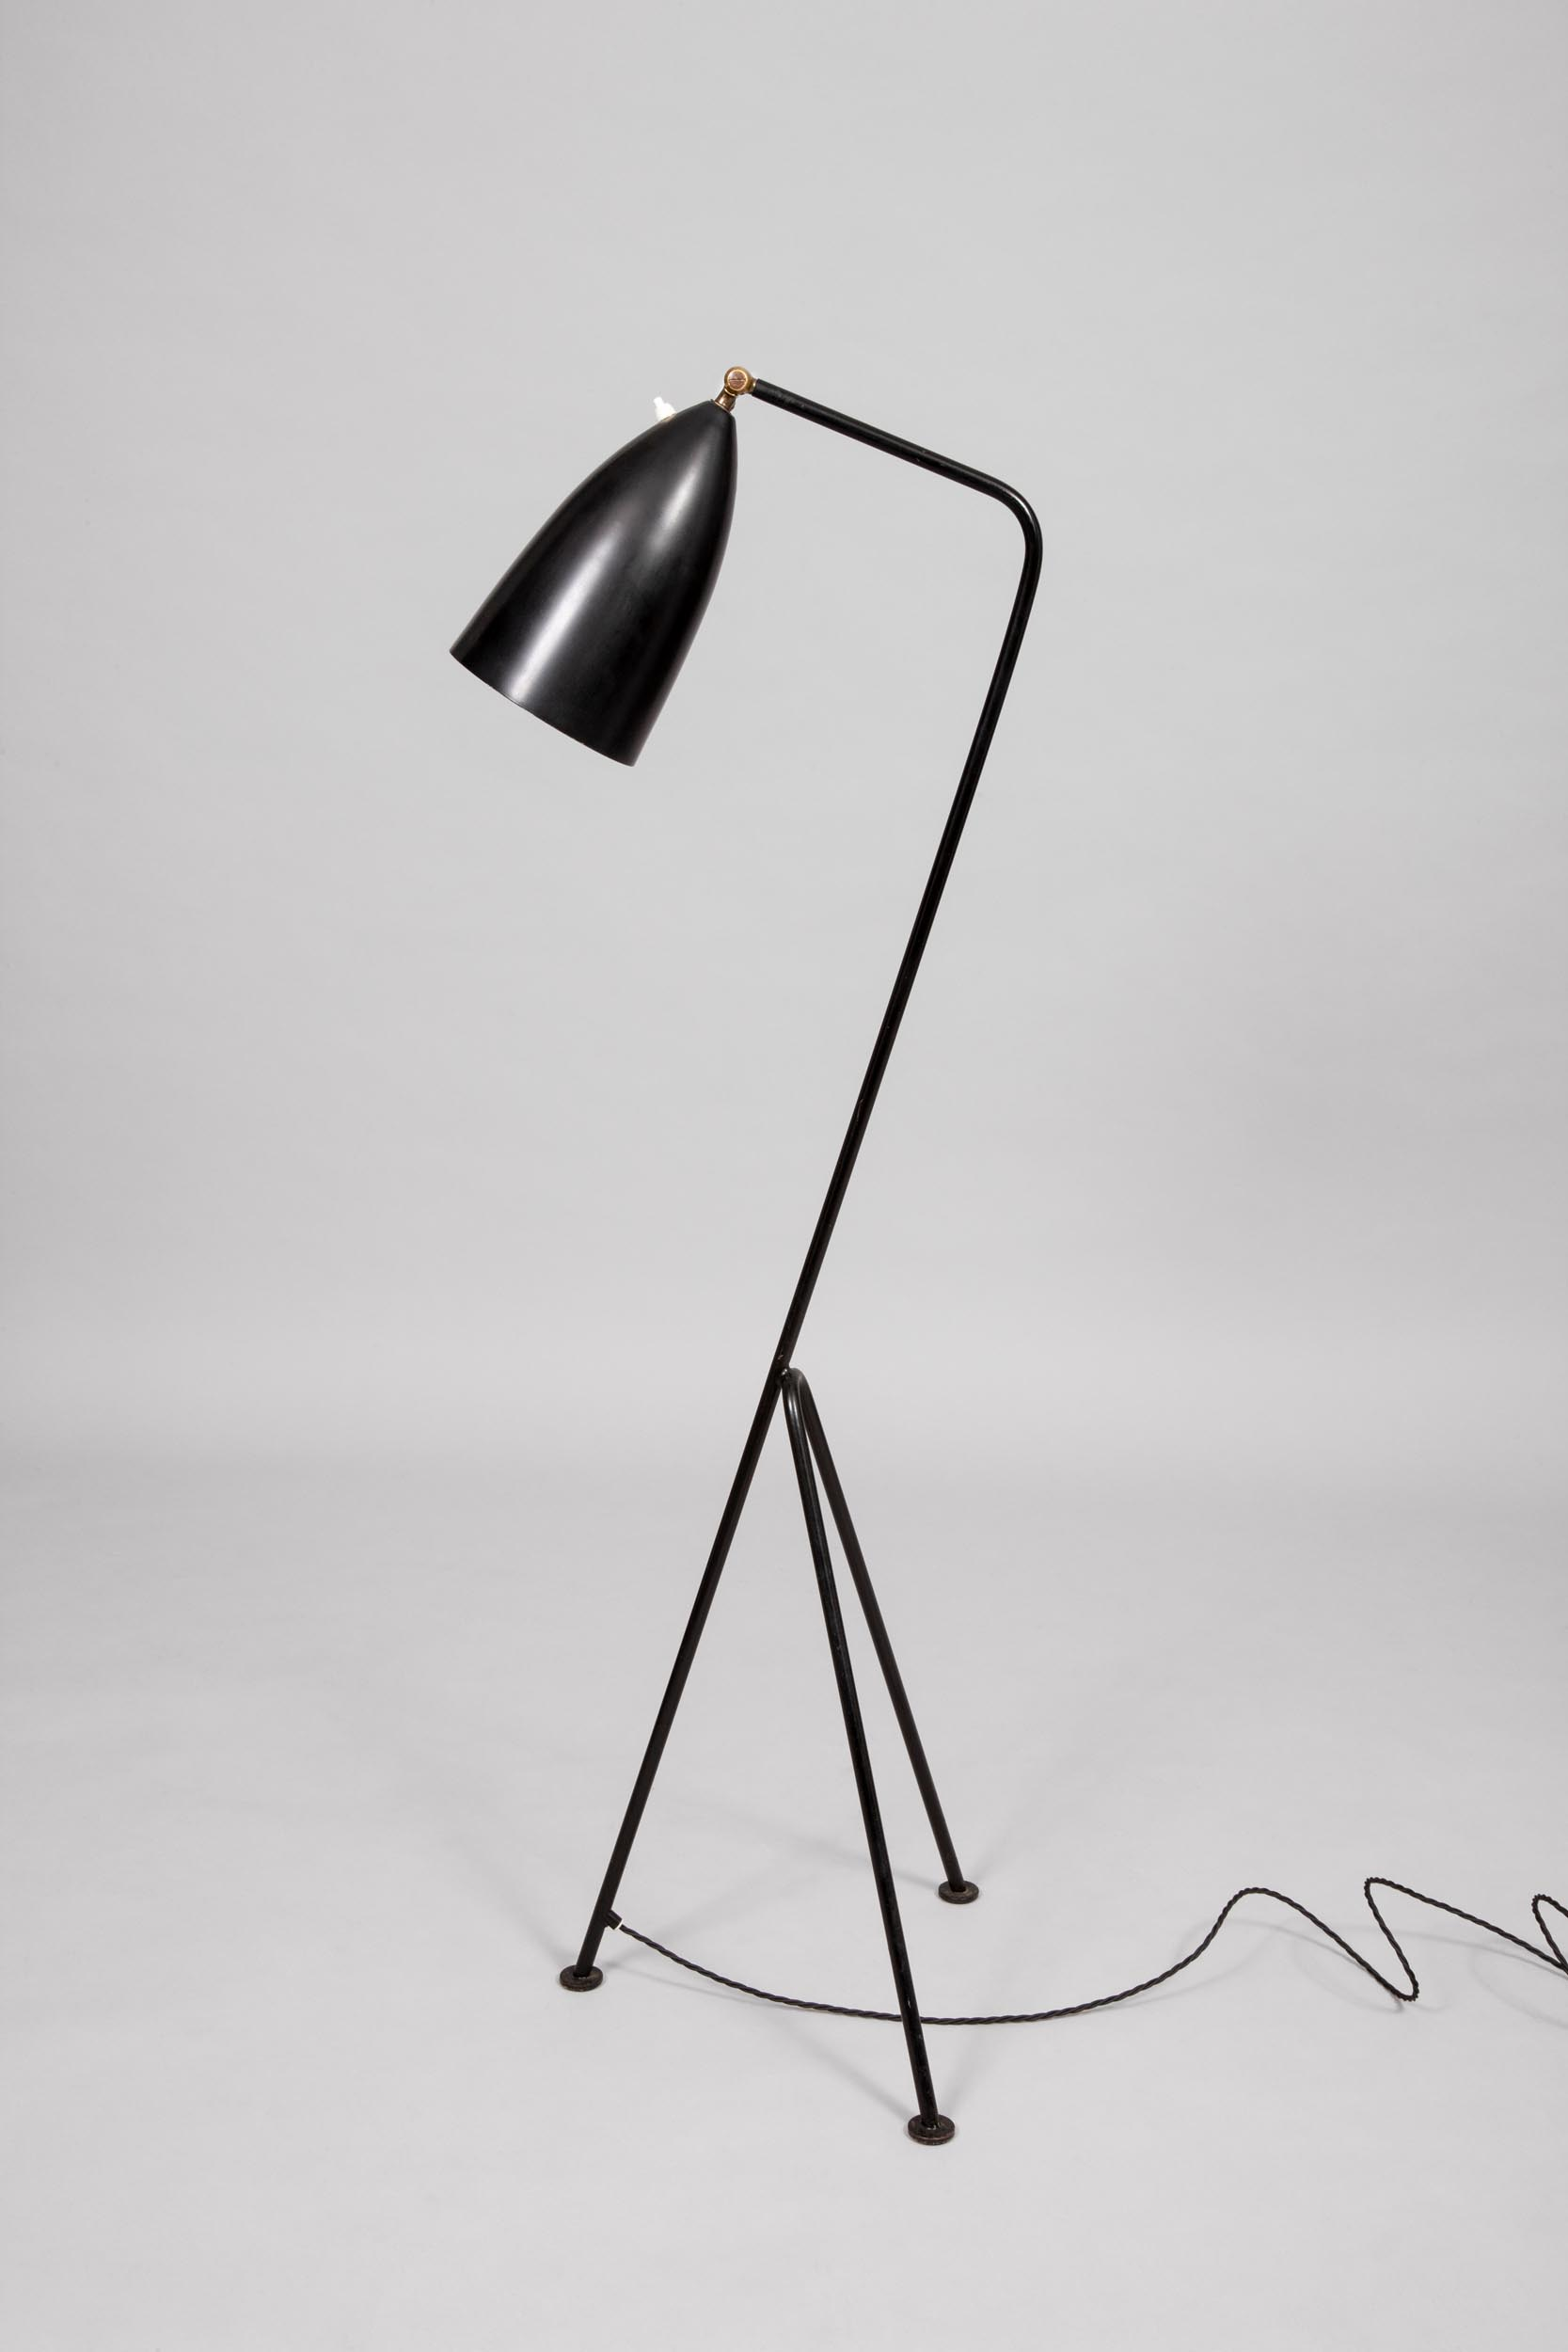 Greta Grossman black painted metal lamp Sweden 1947